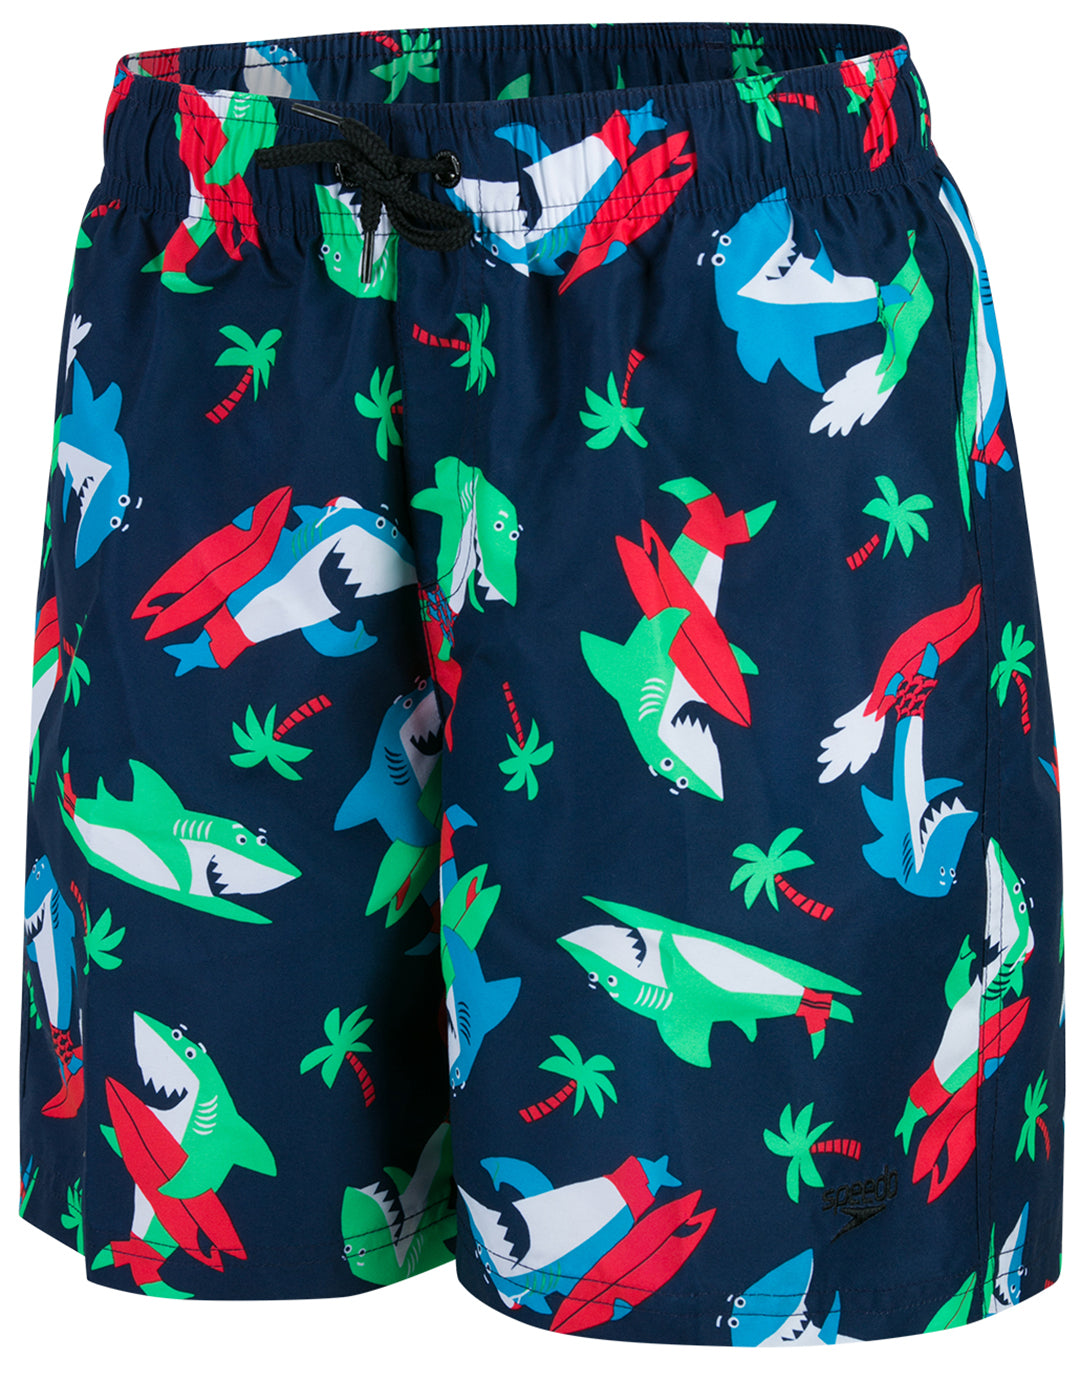 b295e9a882 Tap to expand · Speedo Boys Shark Surfer Printed Leisure 15 inch Watershort  ...